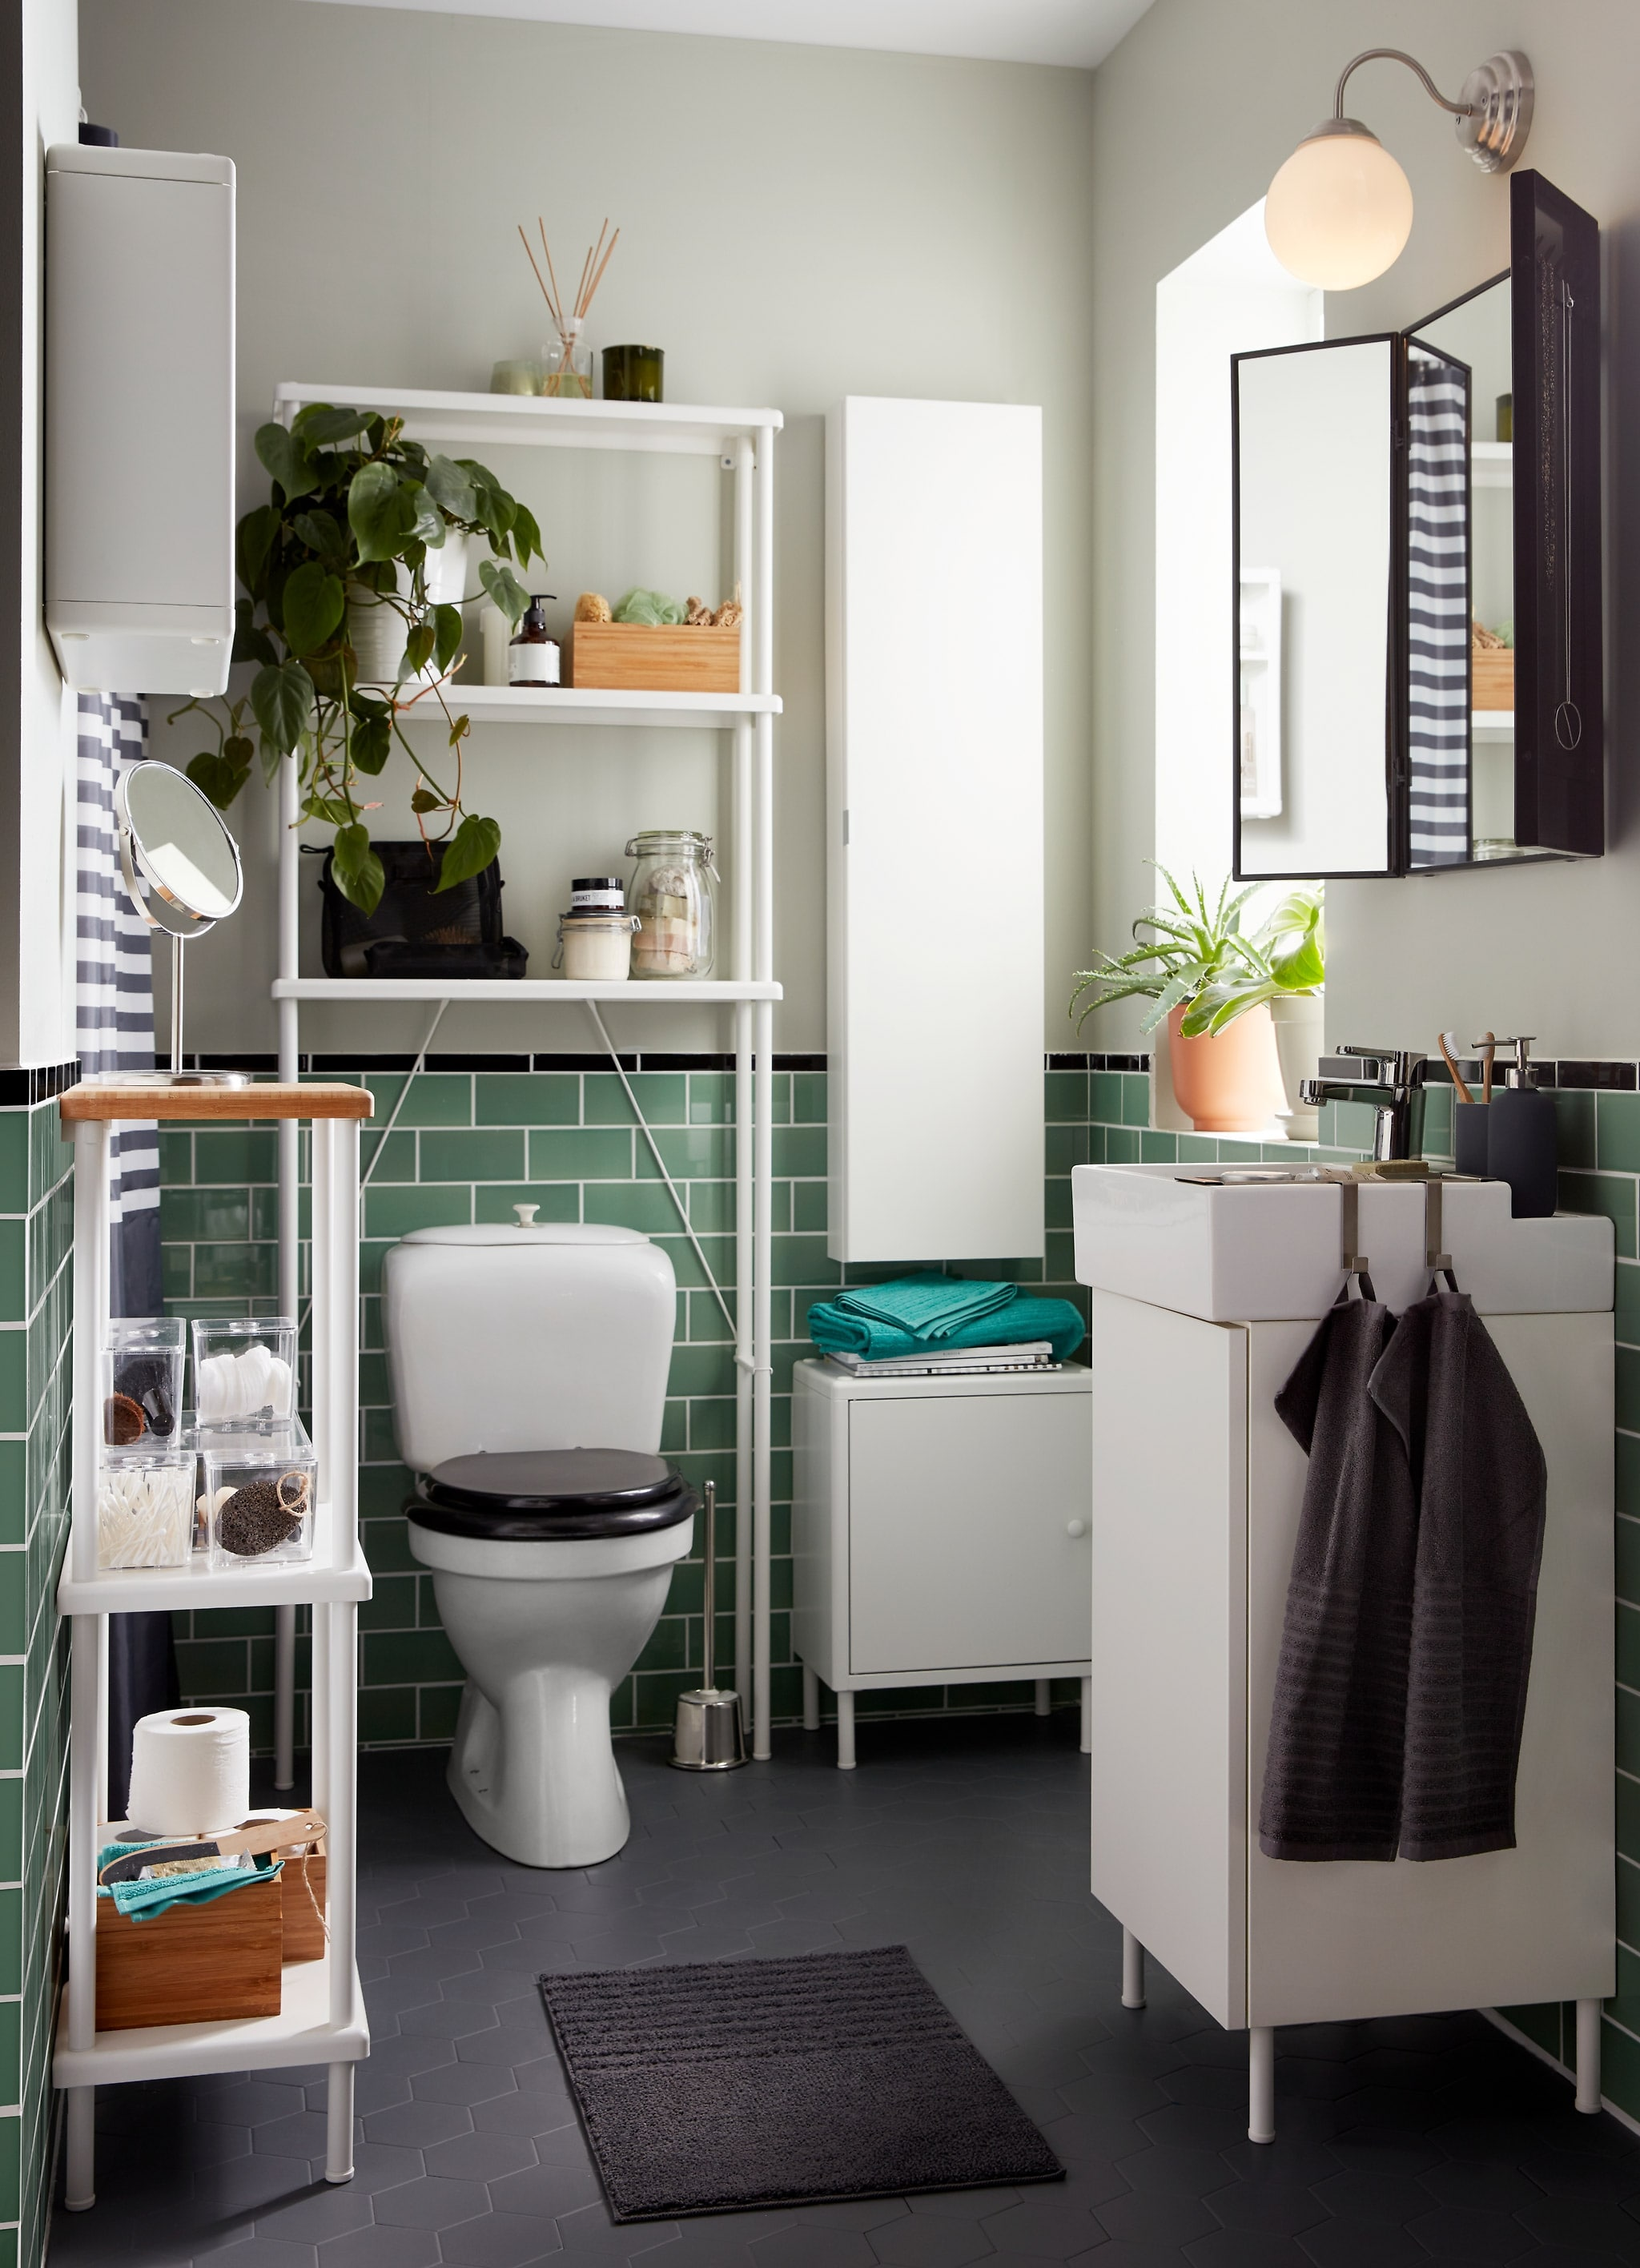 Picturesque Grey Bathroom Wall Of A Small With Green Tiles And A